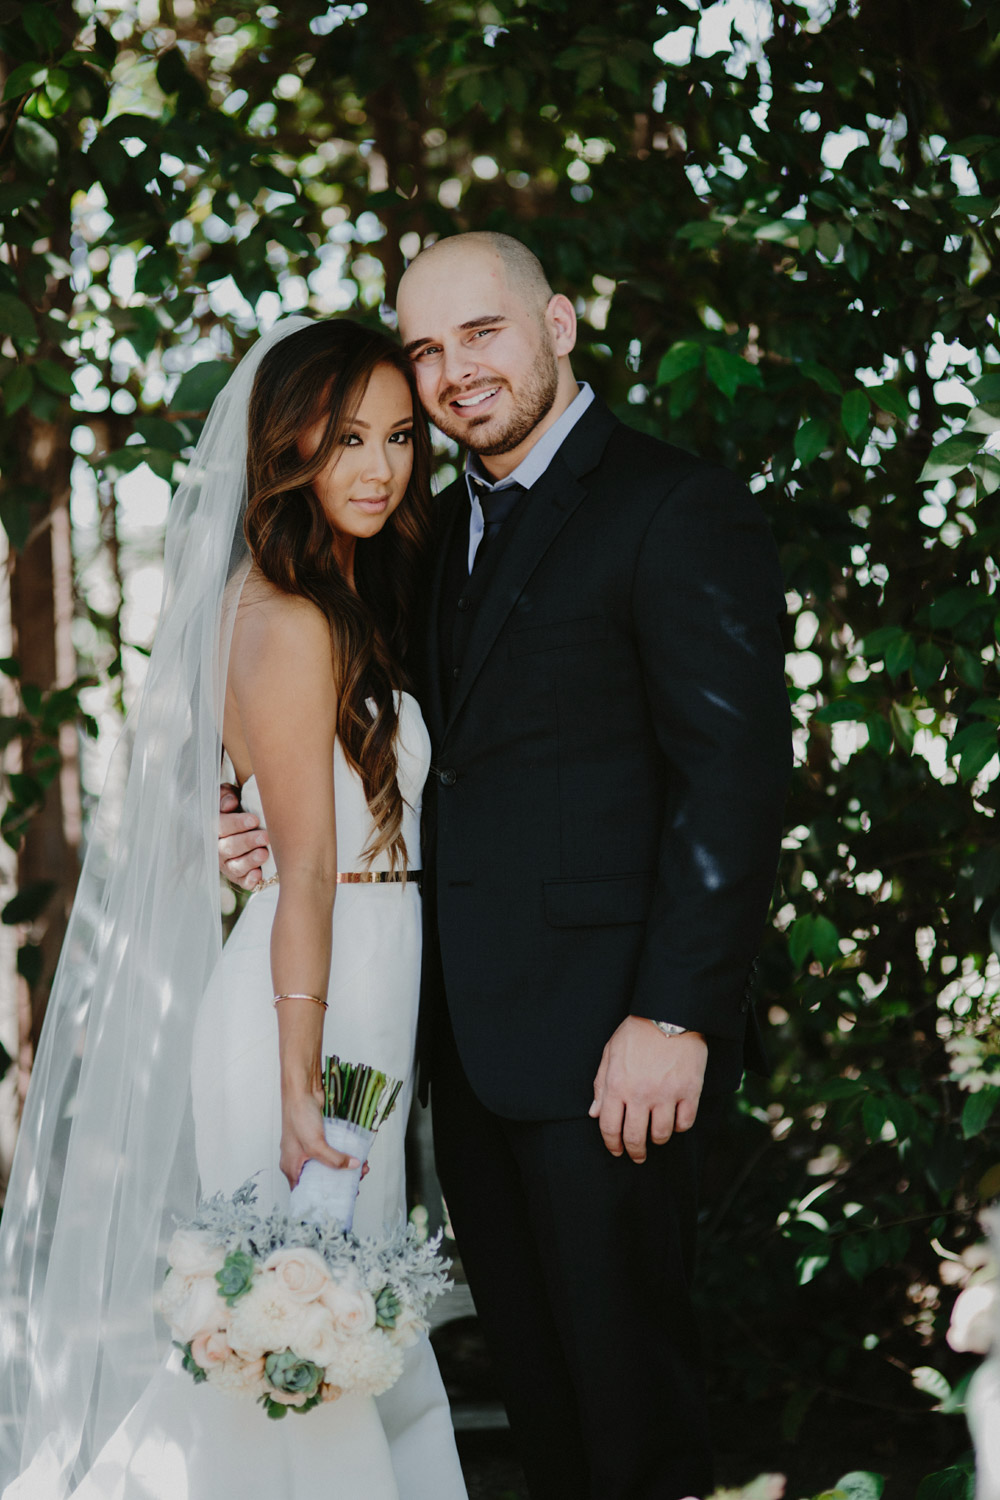 Greg-Petersen-San-Francisco-Wedding-Photographer-1-30.jpg